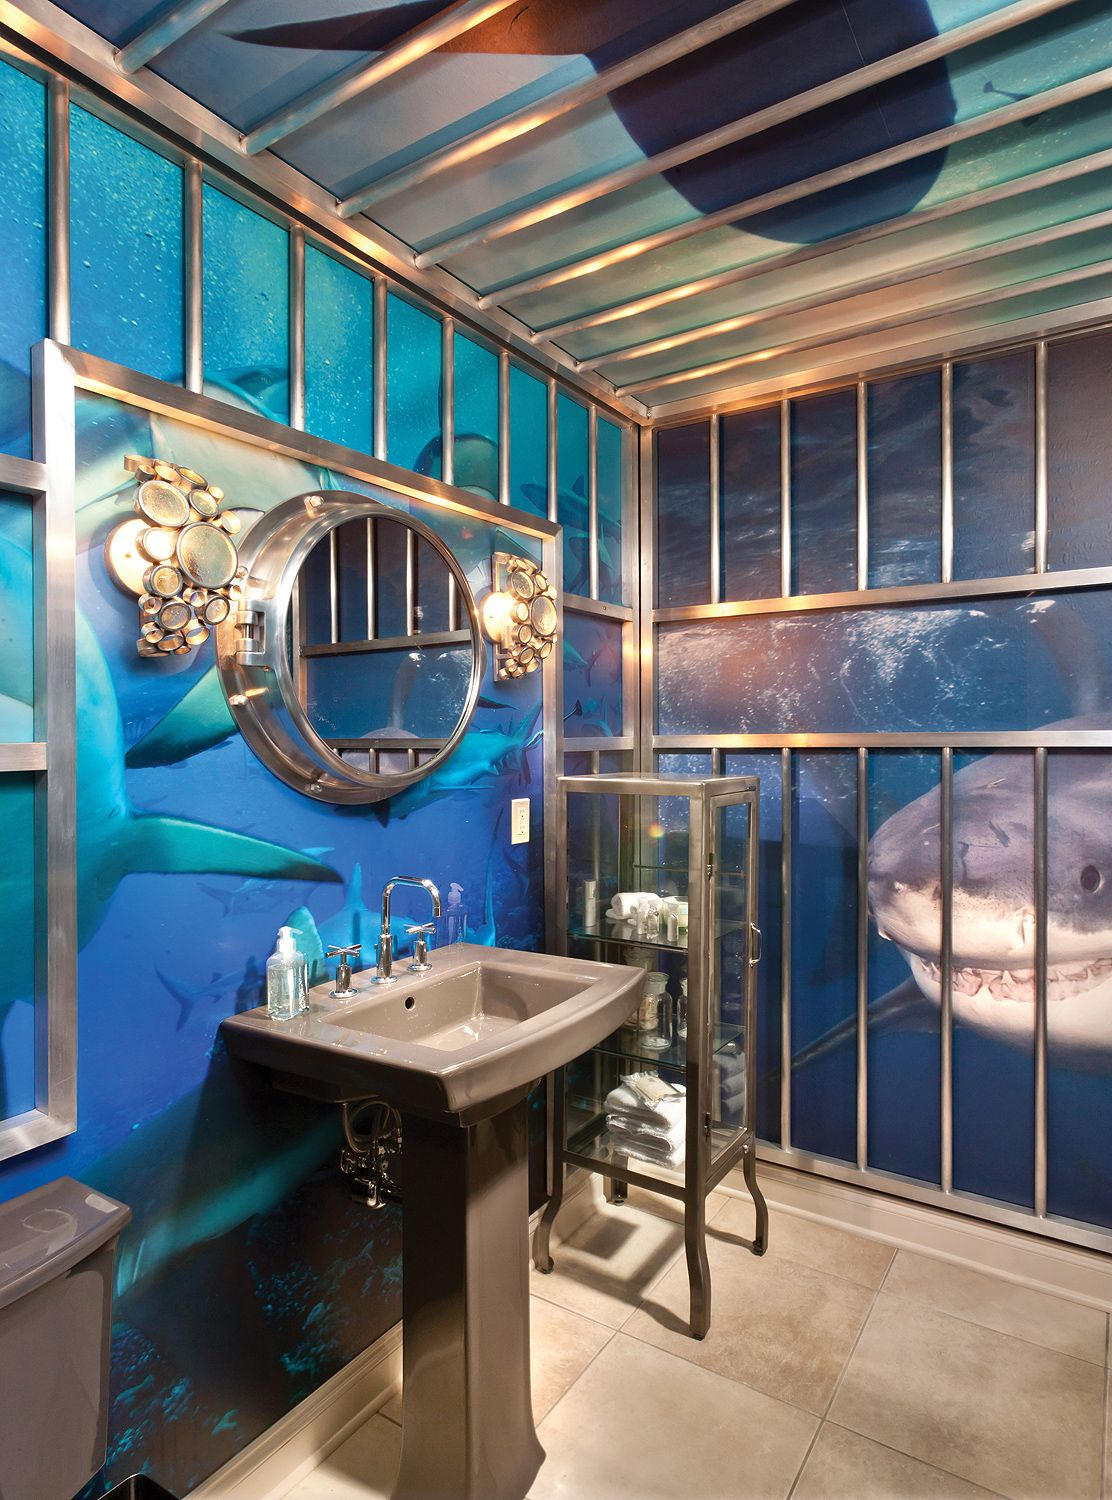 World S Coolest Bathrooms Gallery In 2020 Ocean Bathroom Decor Sea Bathroom Decor Ocean Bathroom